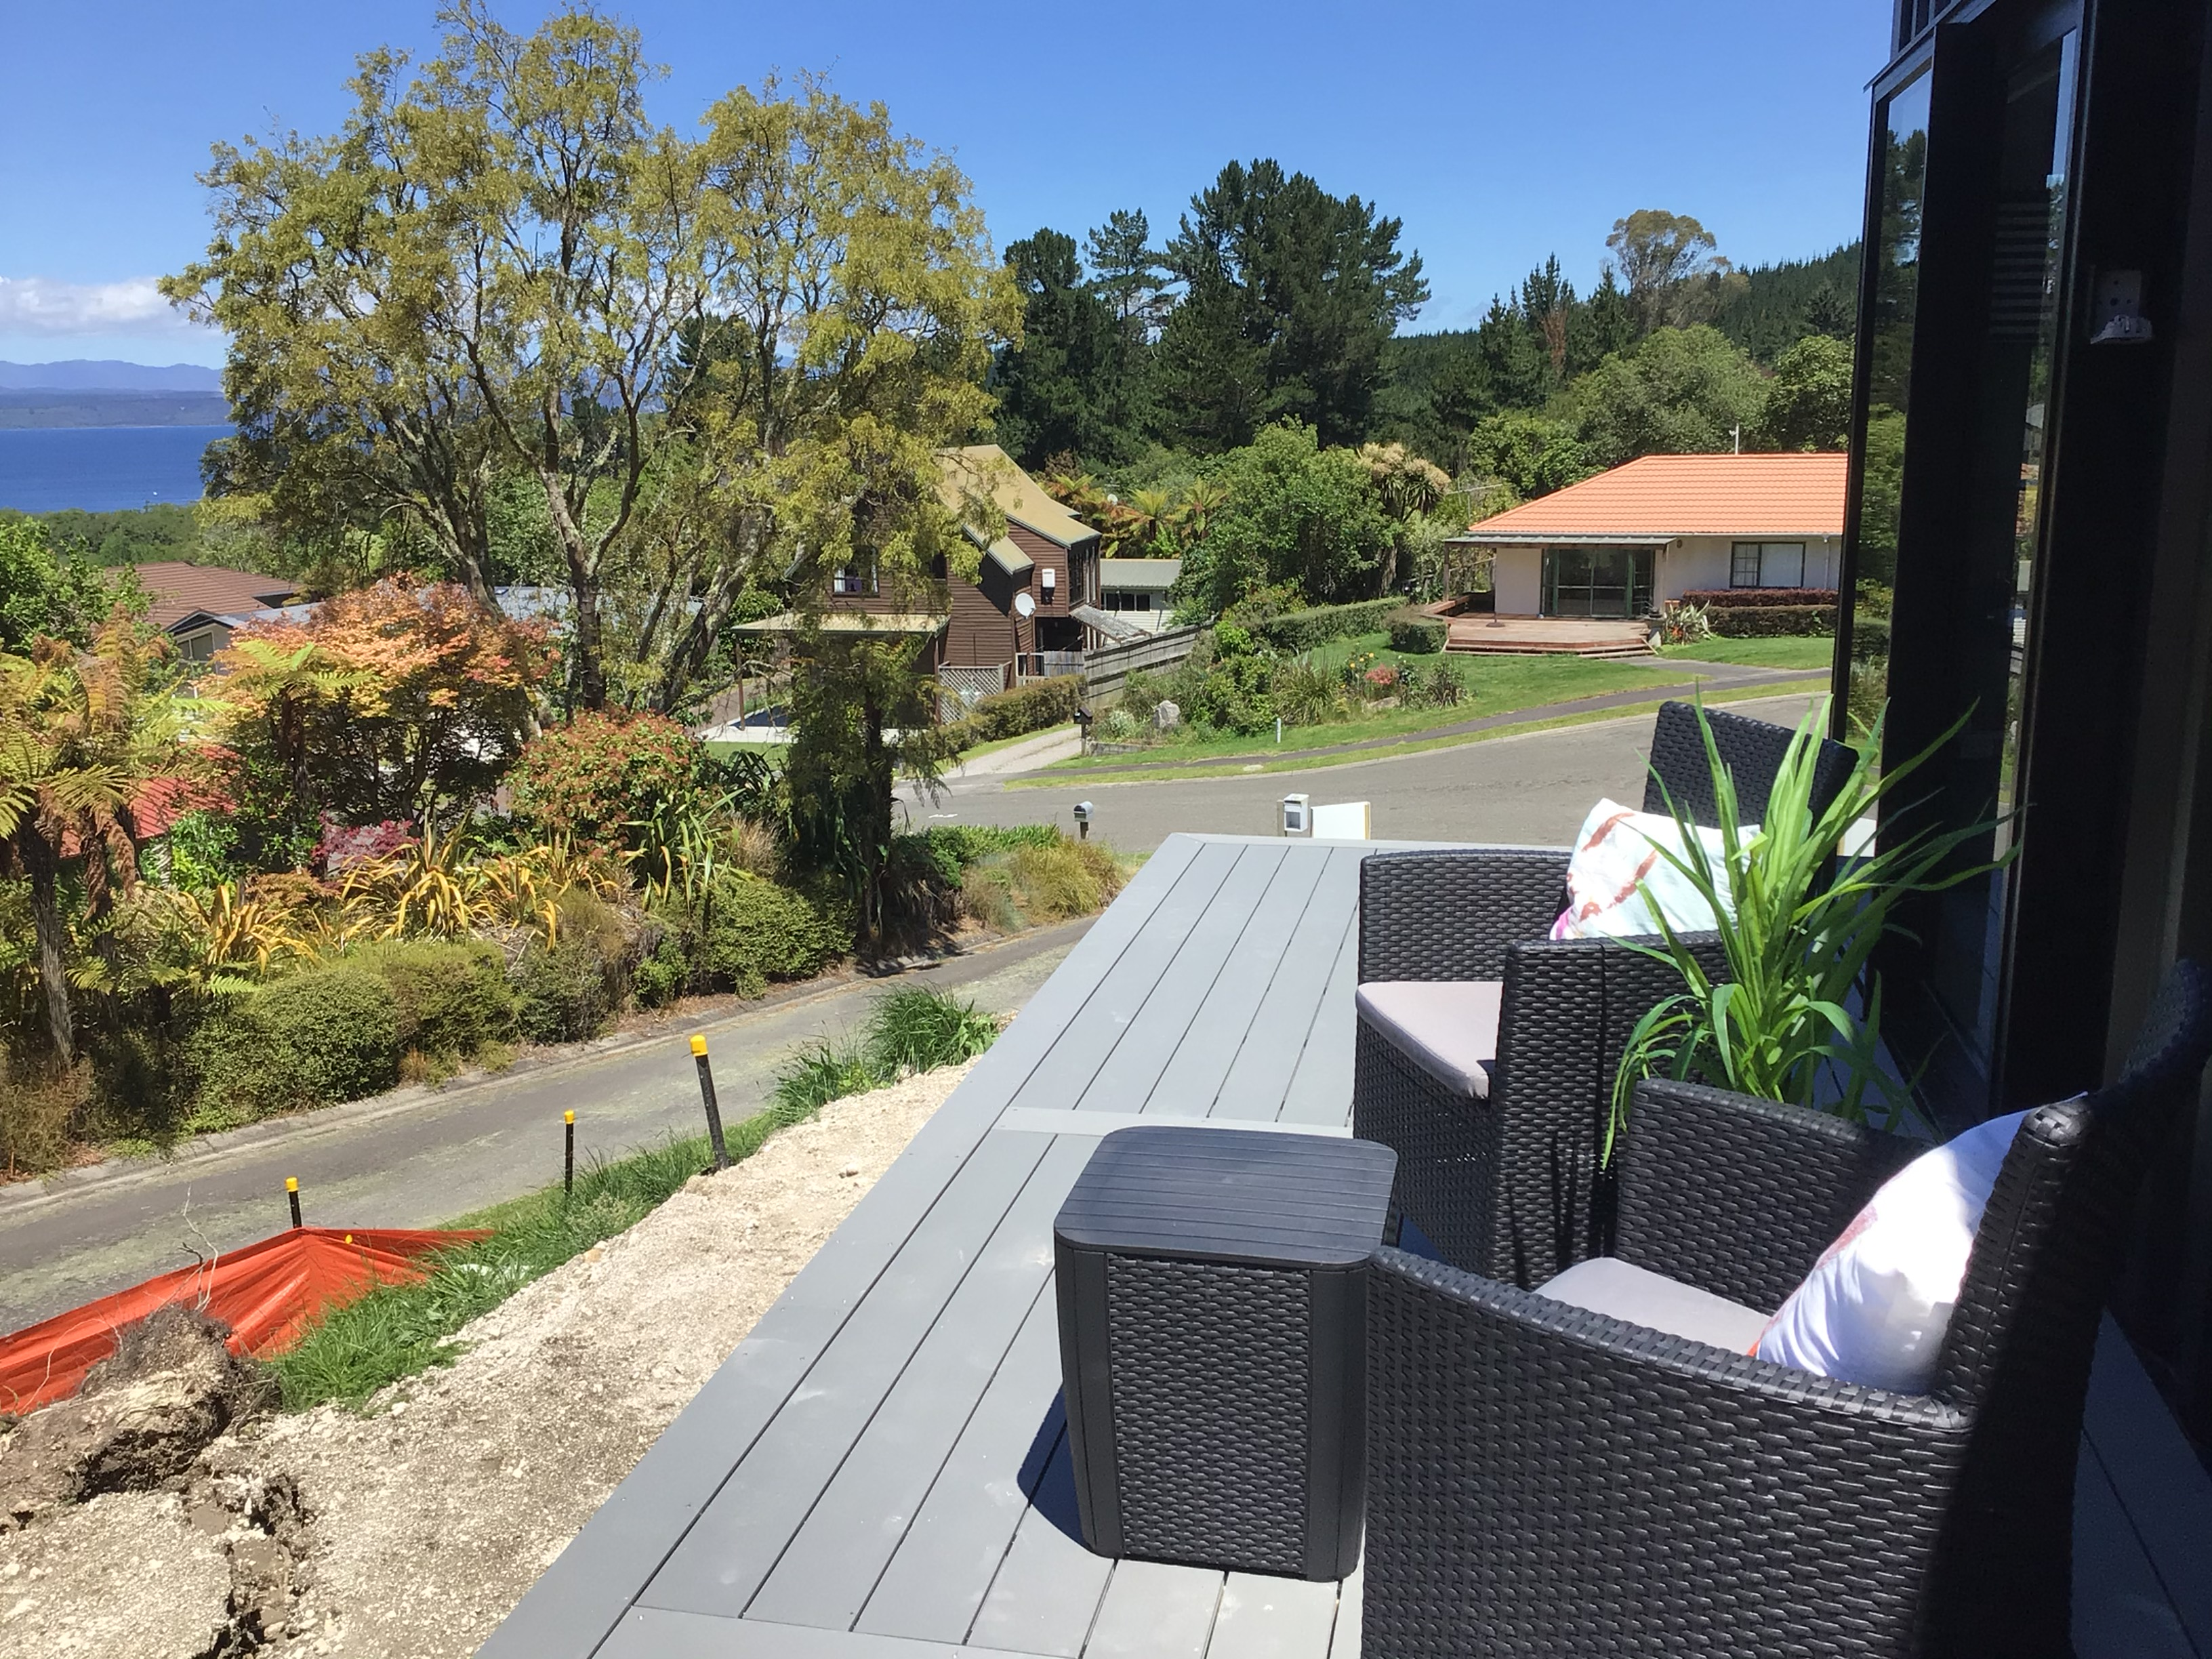 Sunny deck off kitchen/lounge area offers views over Lake Taupo